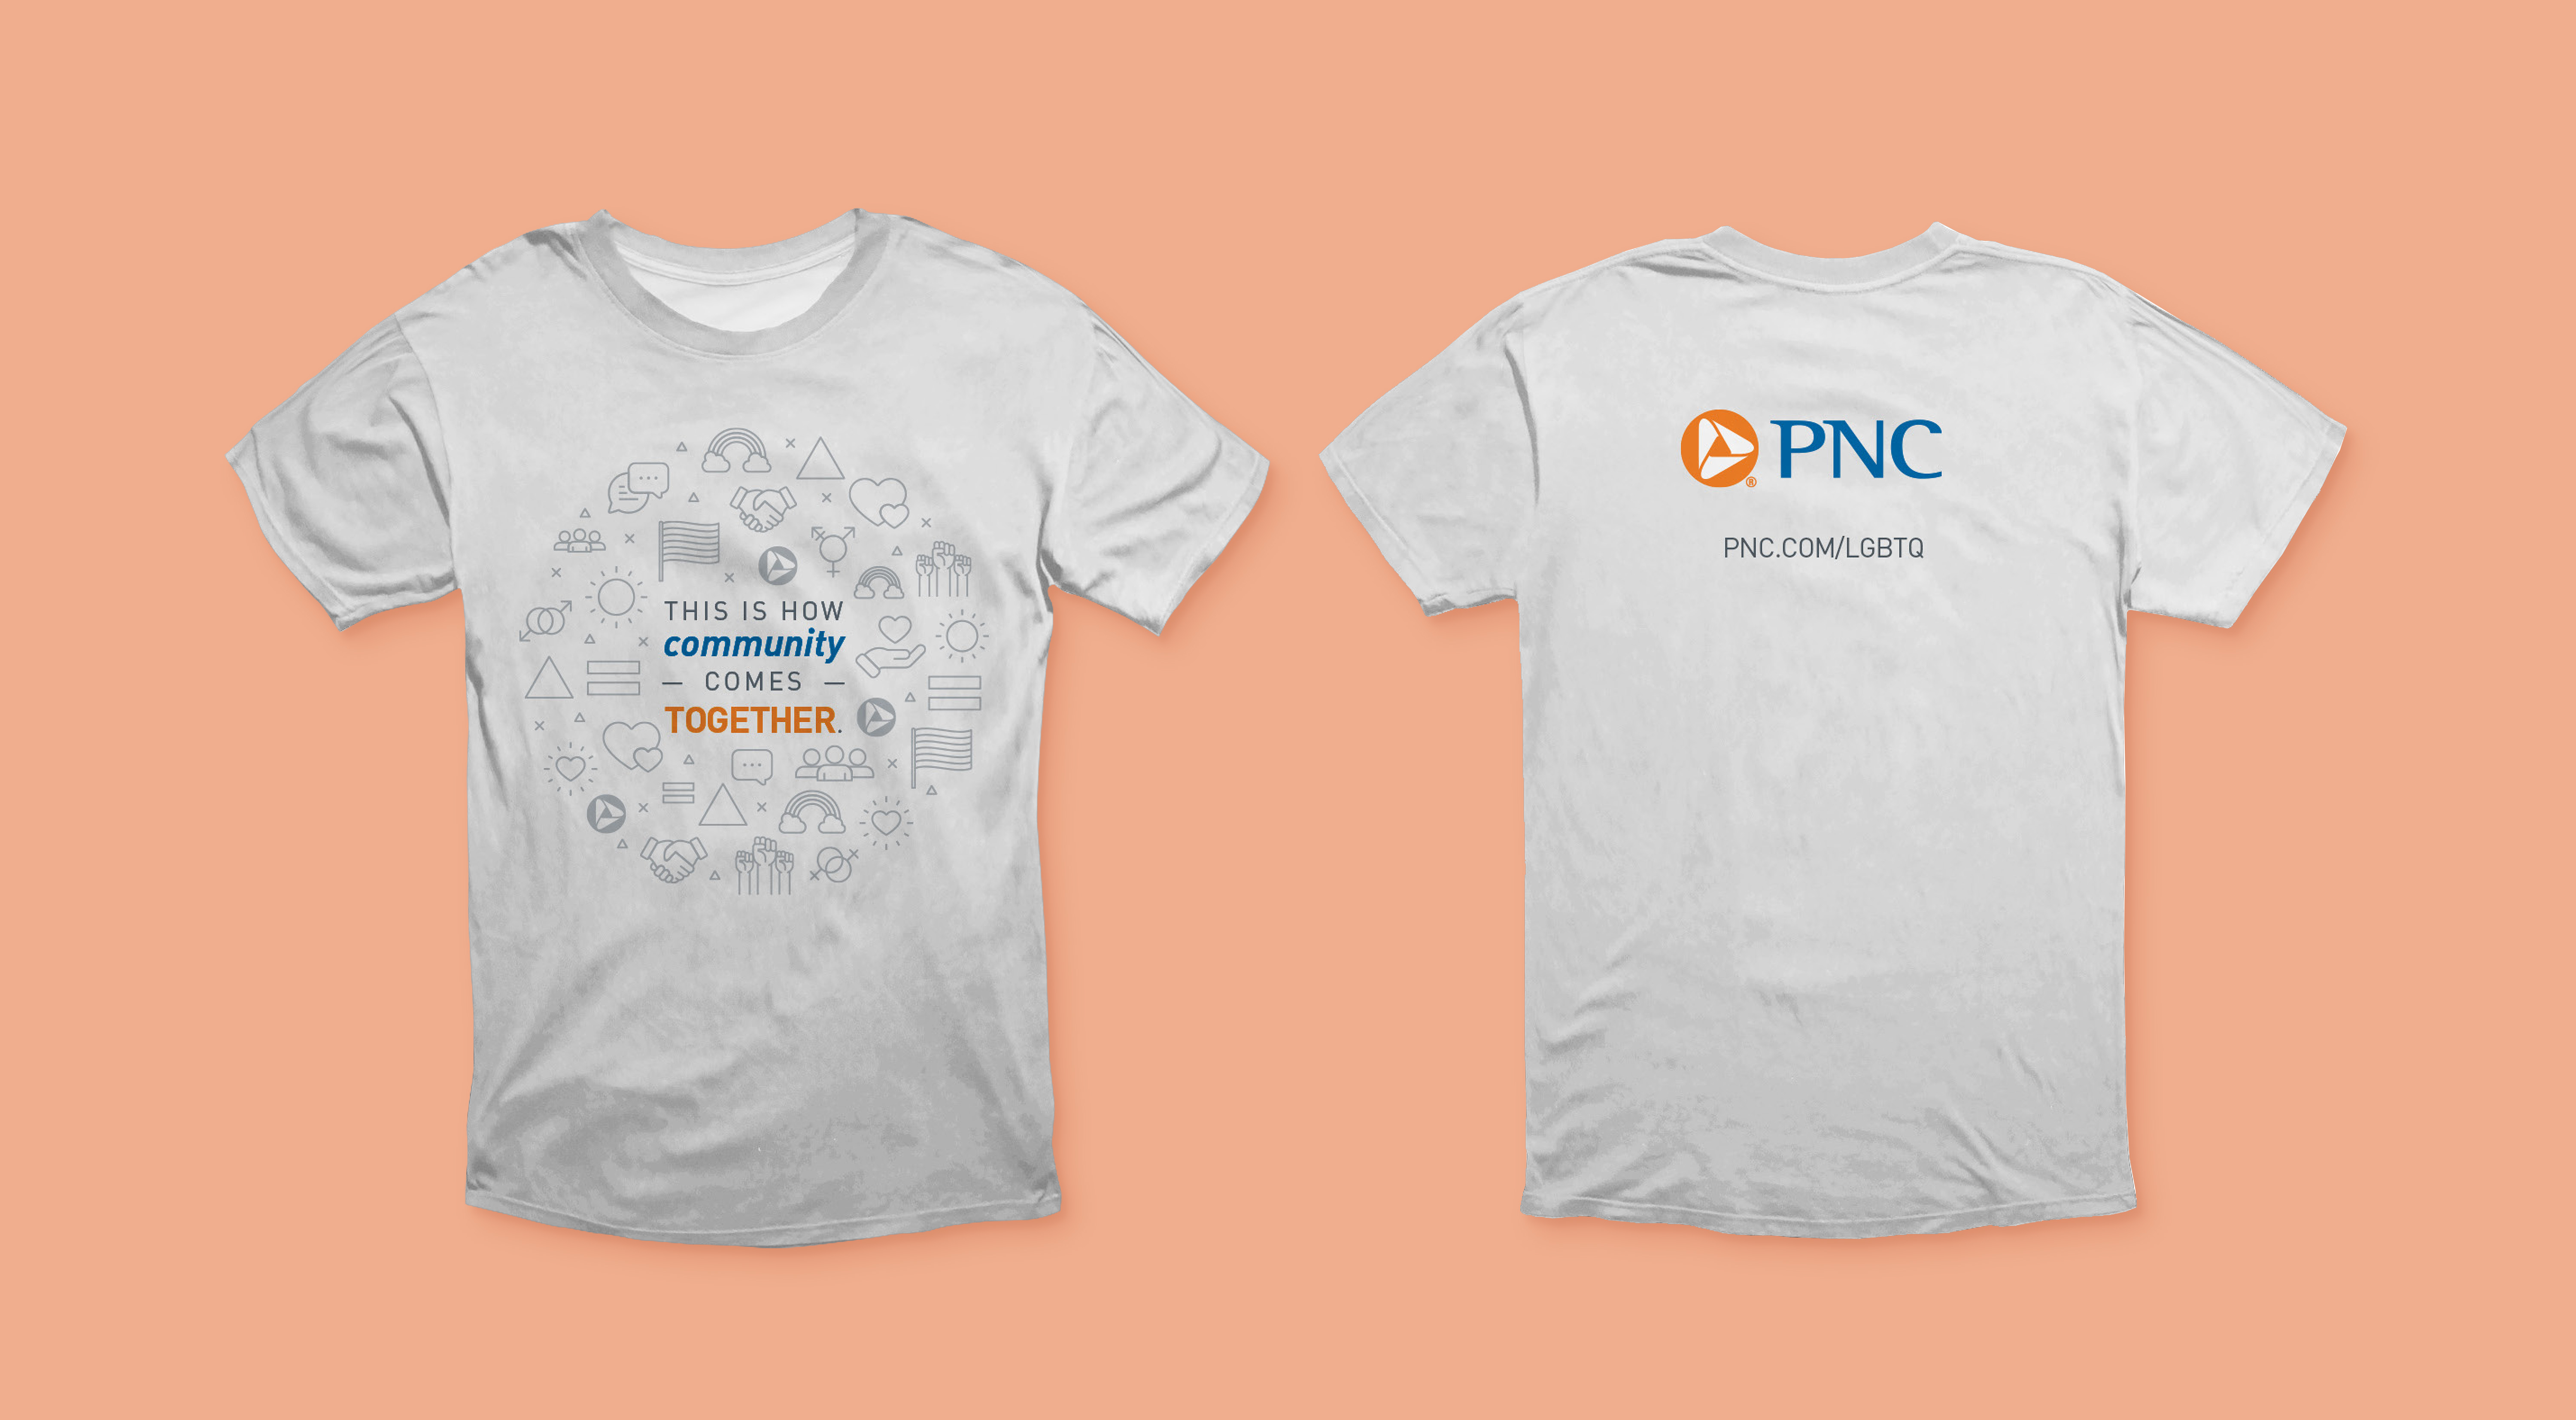 """A mockup of the front and back of a light gray t-shirt over a salmon-colored background. The front features gray, blue, and orange text that reads """"This is how community comes together,"""" with many subtle gray icons in a circle behind the copy. The icons all represent LGBTQ+ history and community - including rainbows, the trans and gay/lesbian symbols, triangles, and more - as well as the PNC logo. The back features the PNC logo and a URL reading """"pnc.com/LGBTQ."""""""